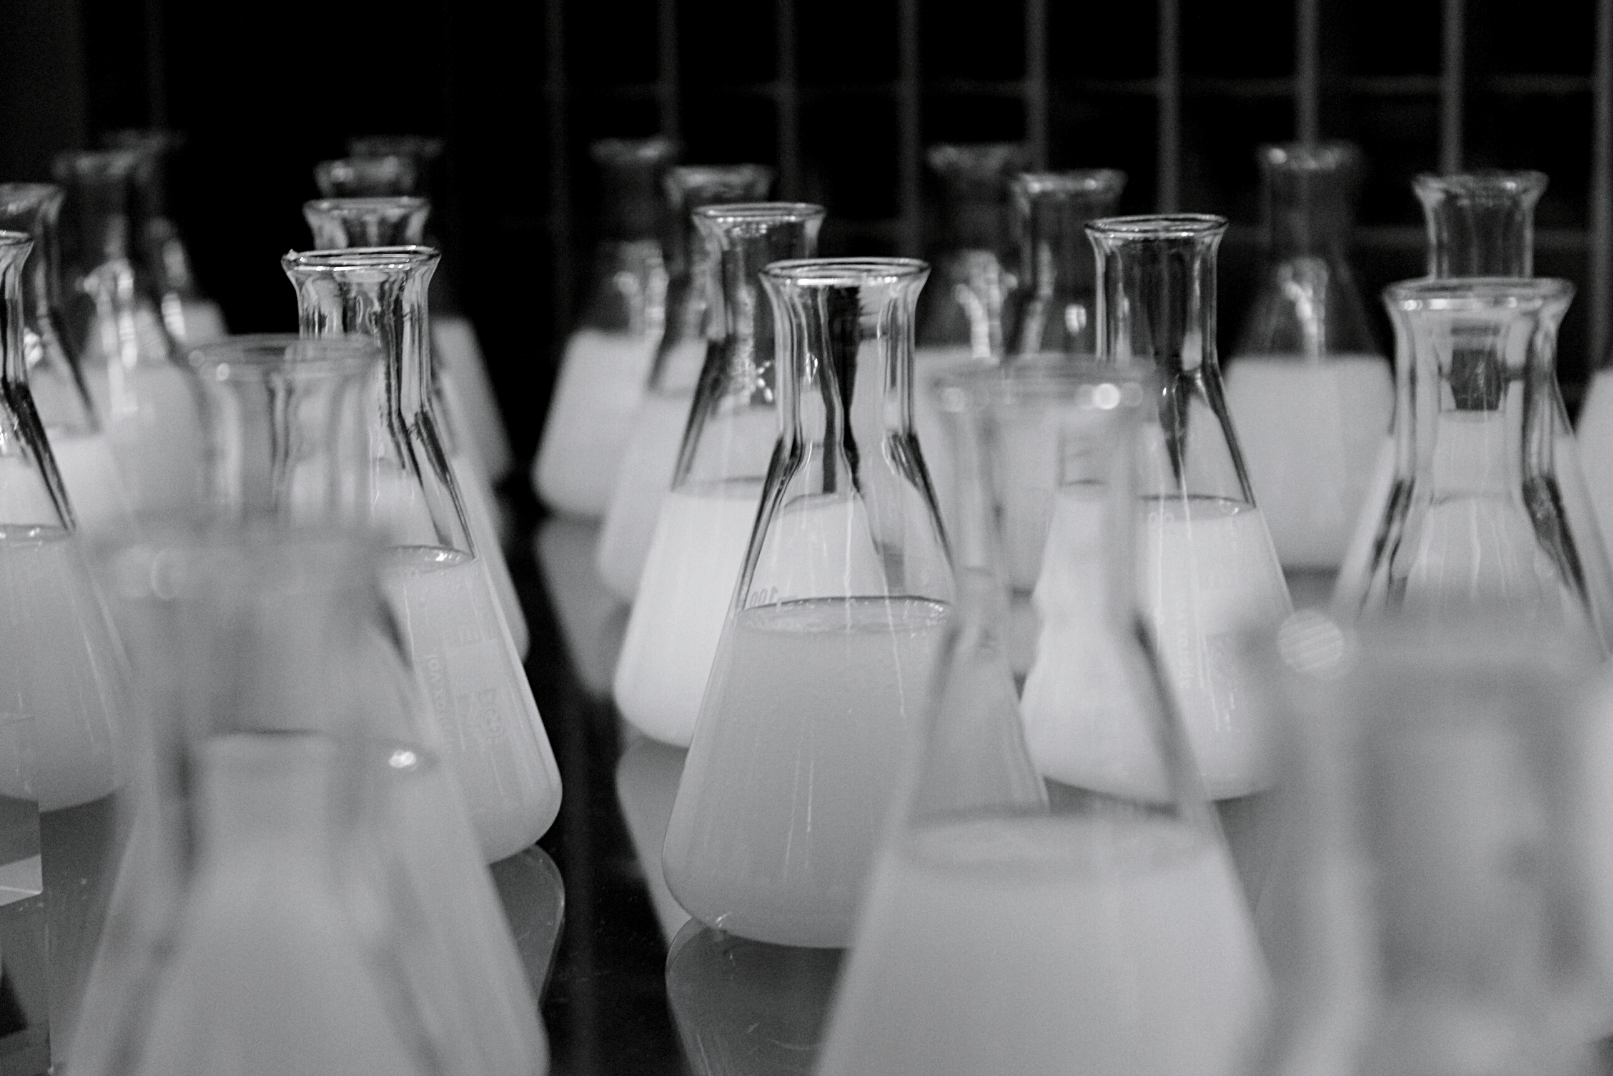 Black and white photograph of rows of Erlenmeyer flasks.